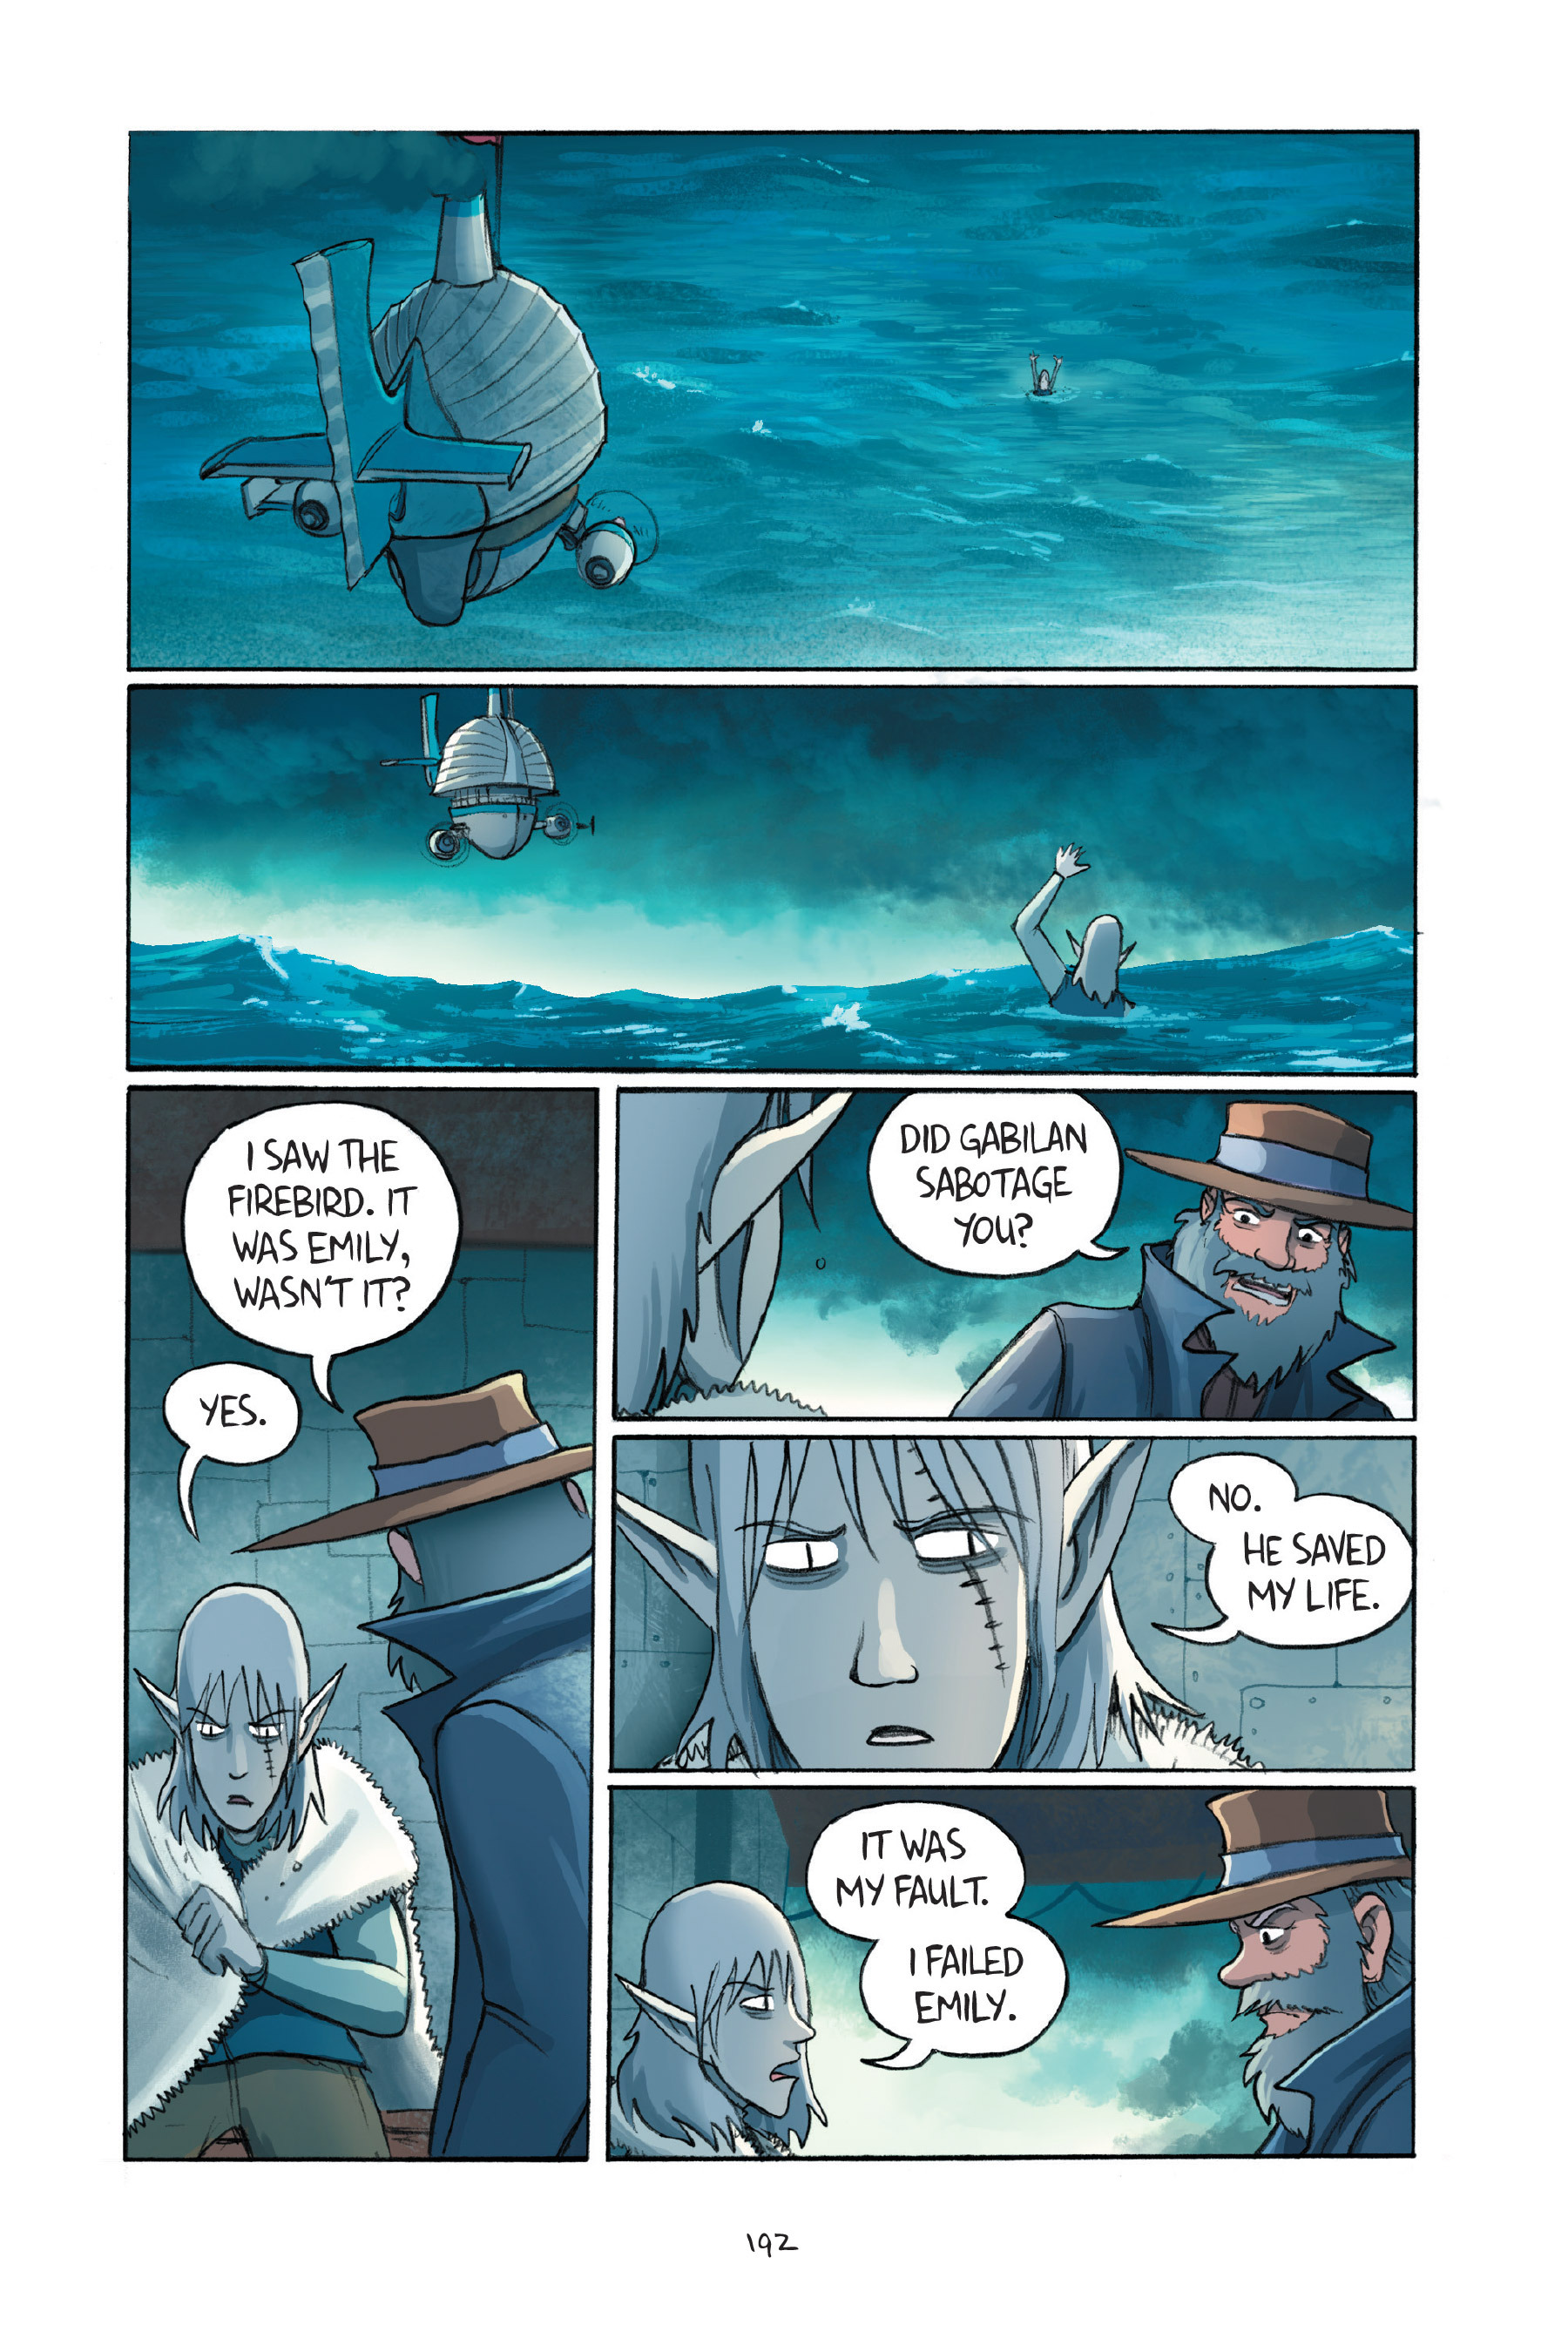 Read online Amulet comic -  Issue #7 - 190